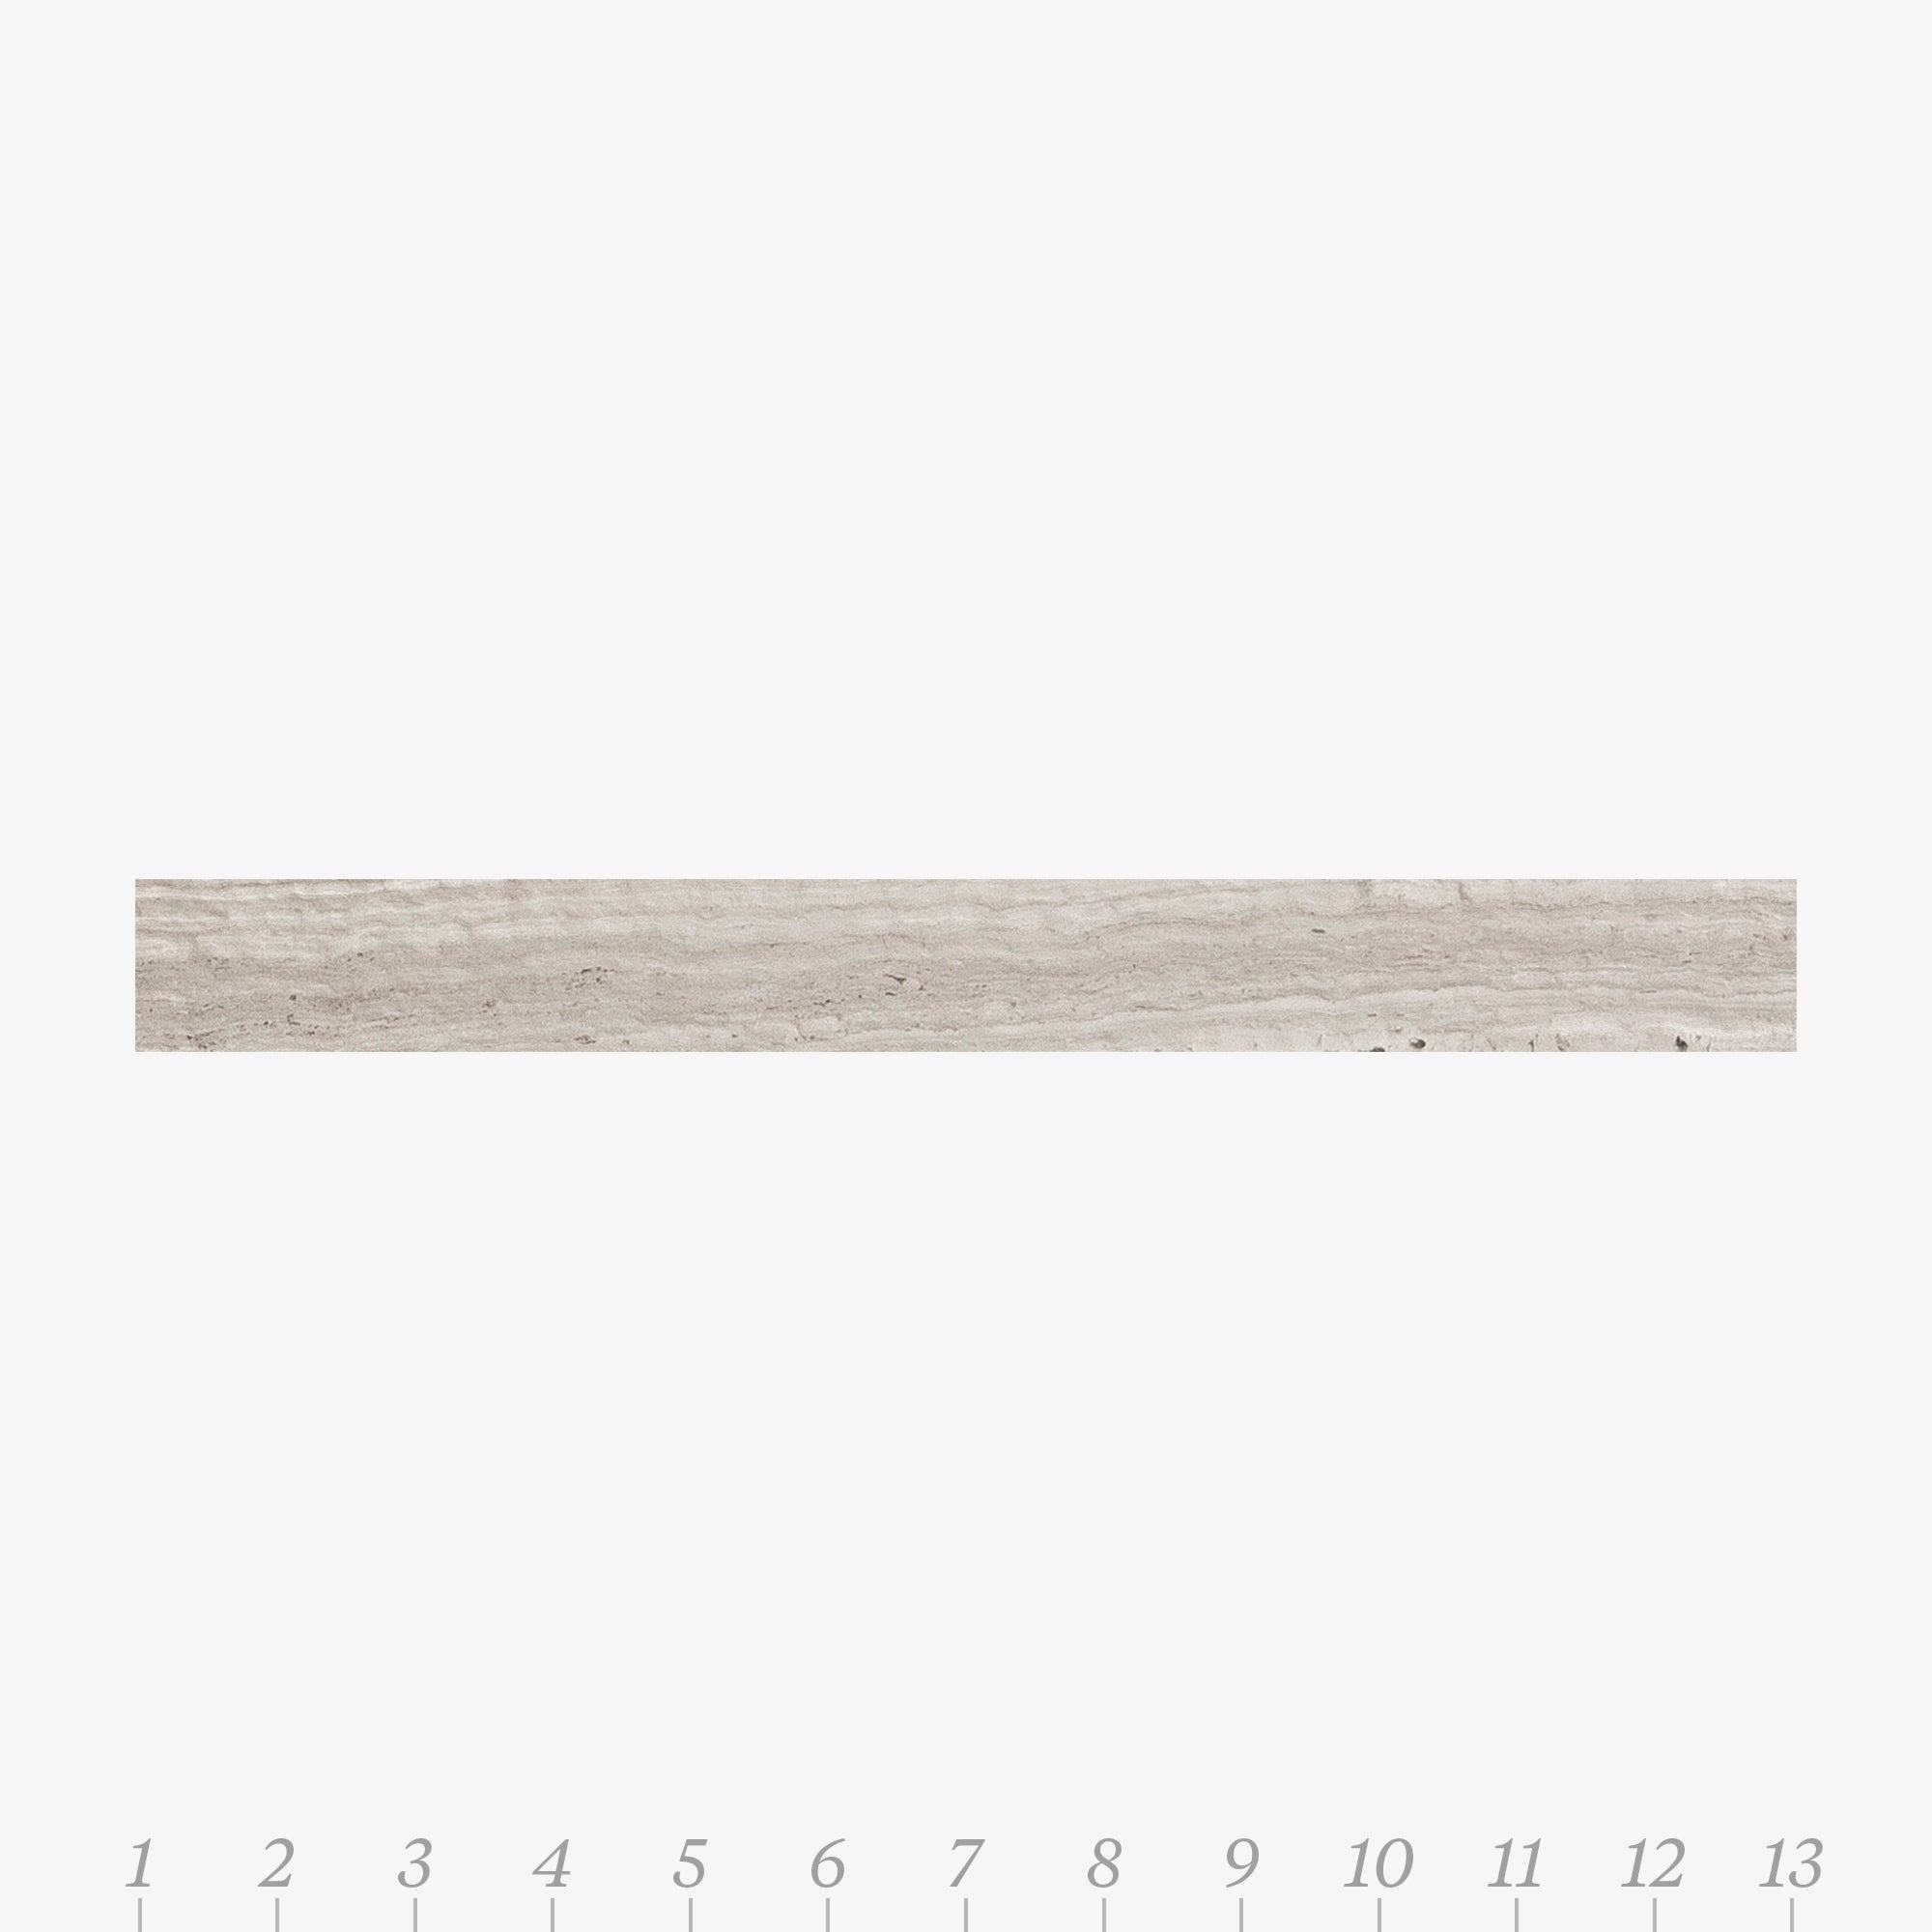 Chelsea 2 Cloud Limestone Swatch Card  Honed Samples Liner product photo